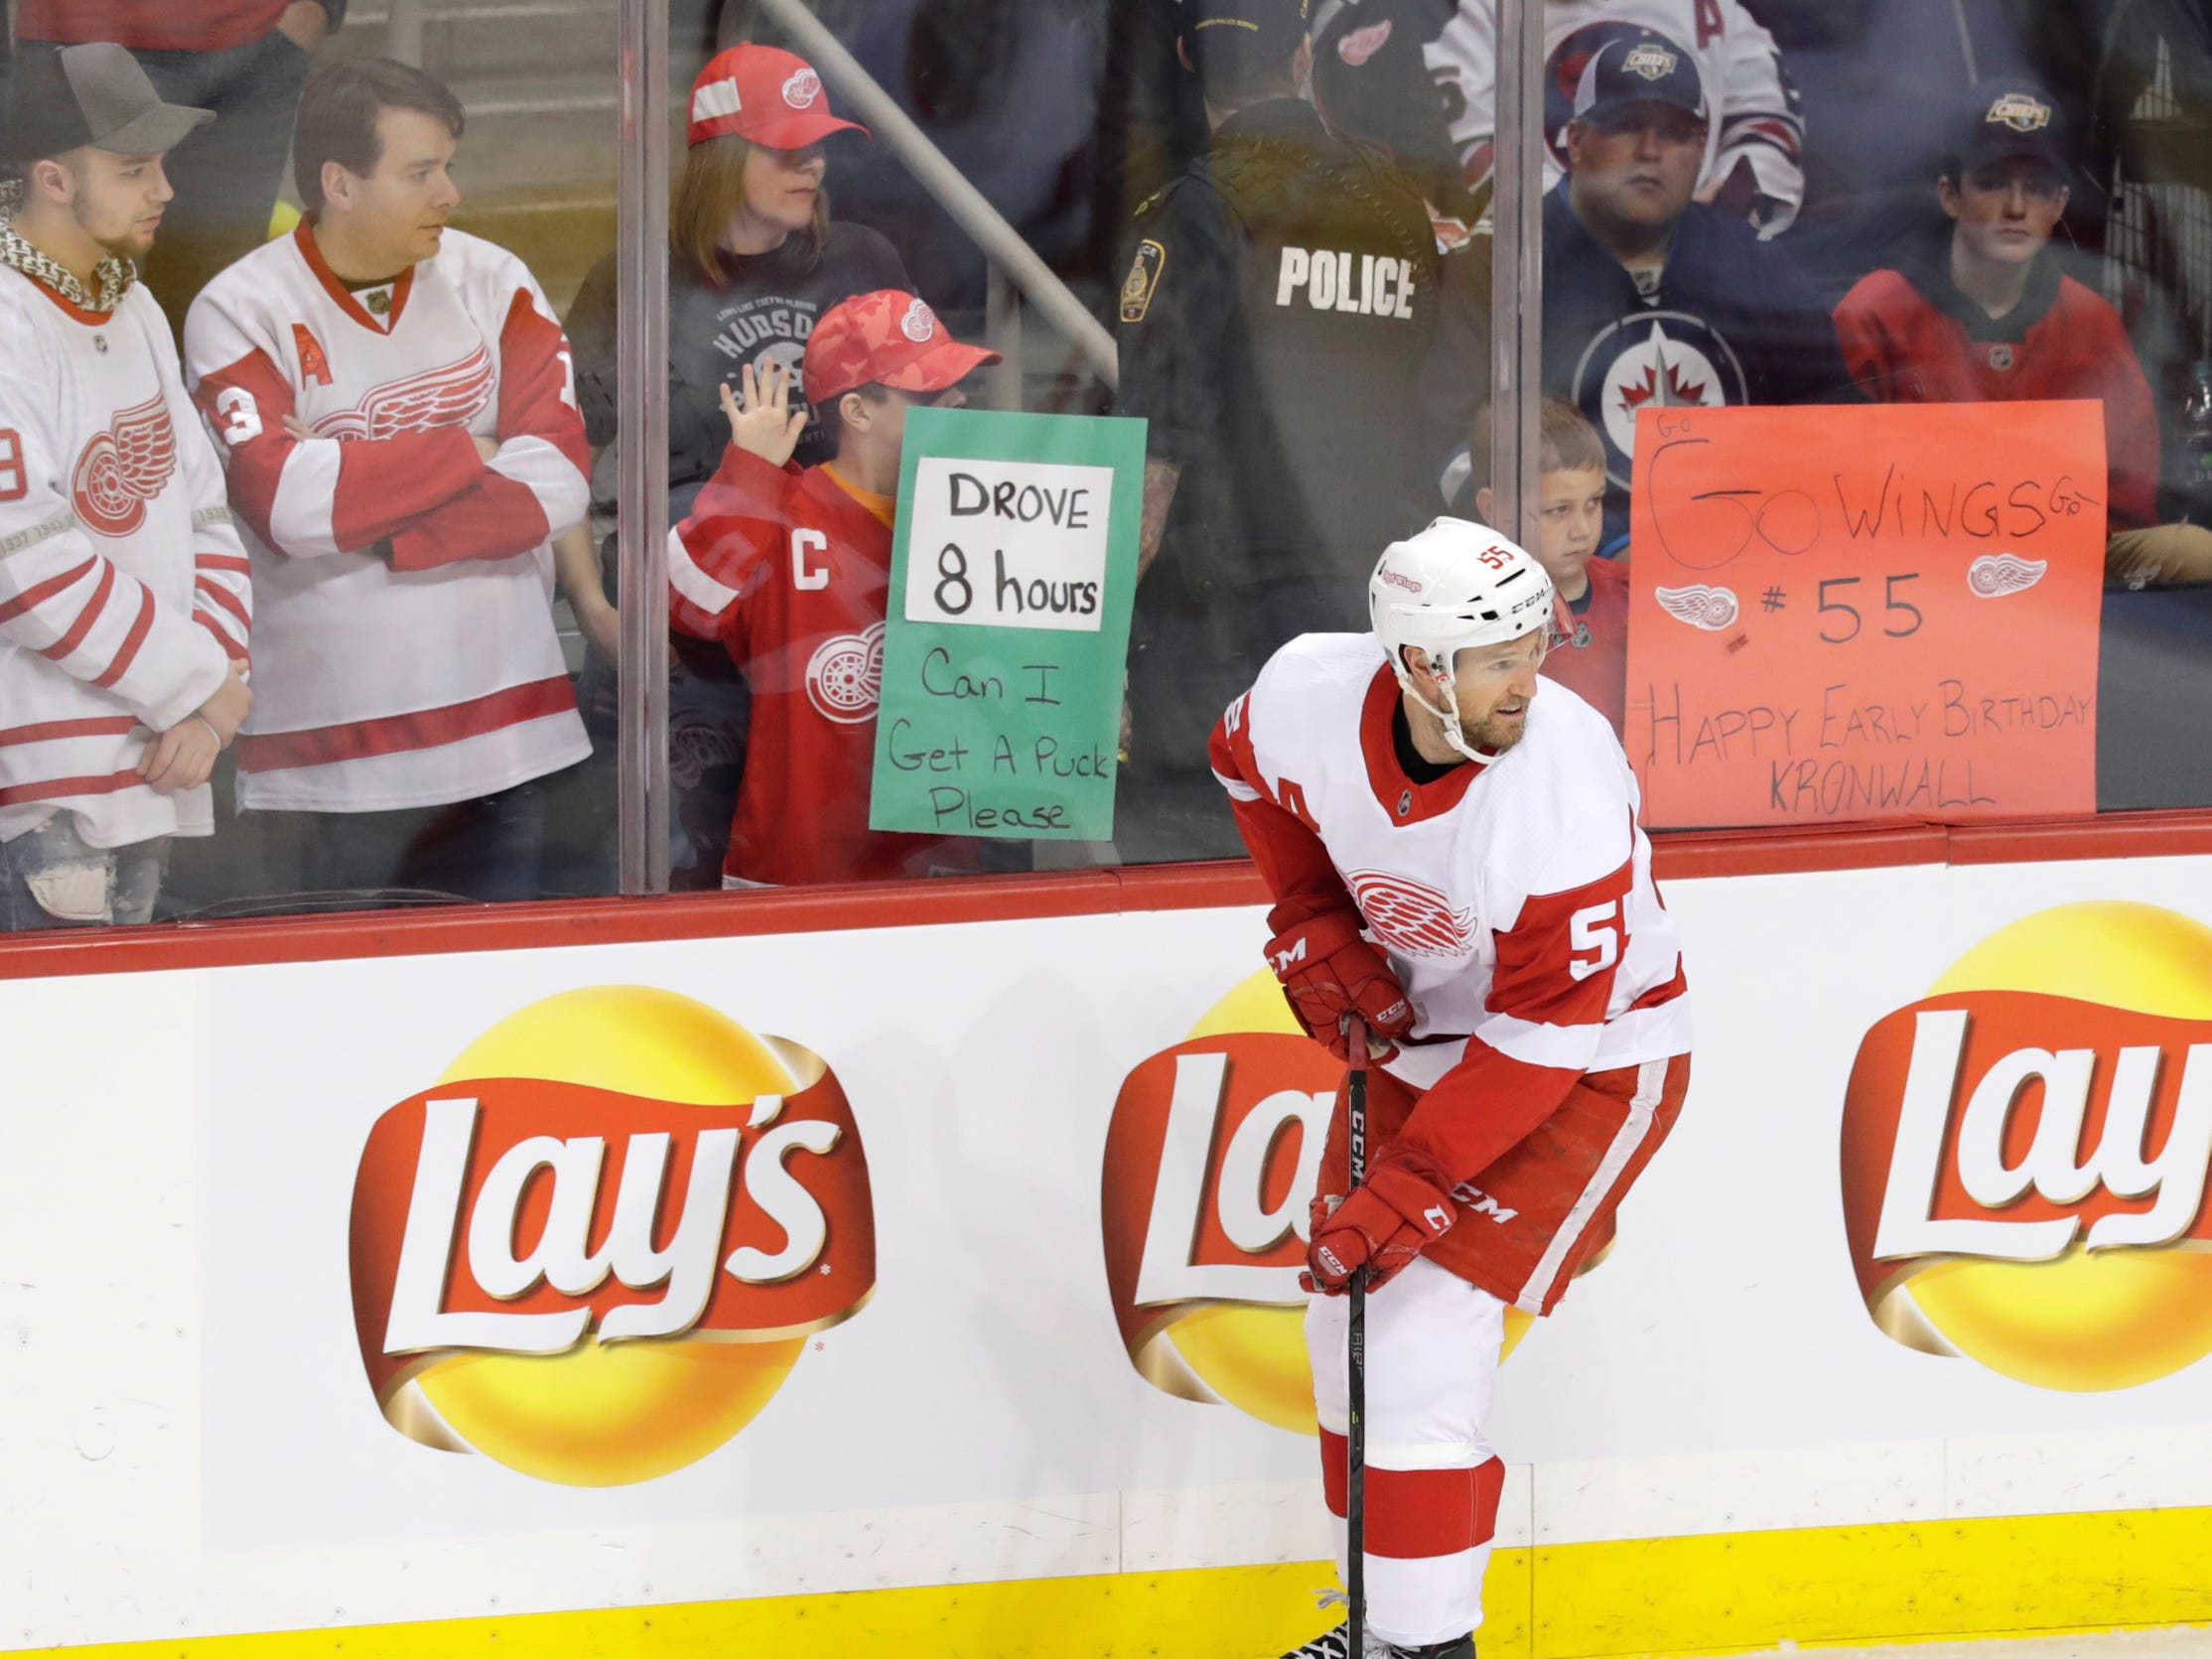 Defenseman Niklas Kronwall skates past Detroit Red Wings fans before a game against the Winnipeg Jets at Bell MTS Place, Jan. 11, 2019 in Winnipeg.